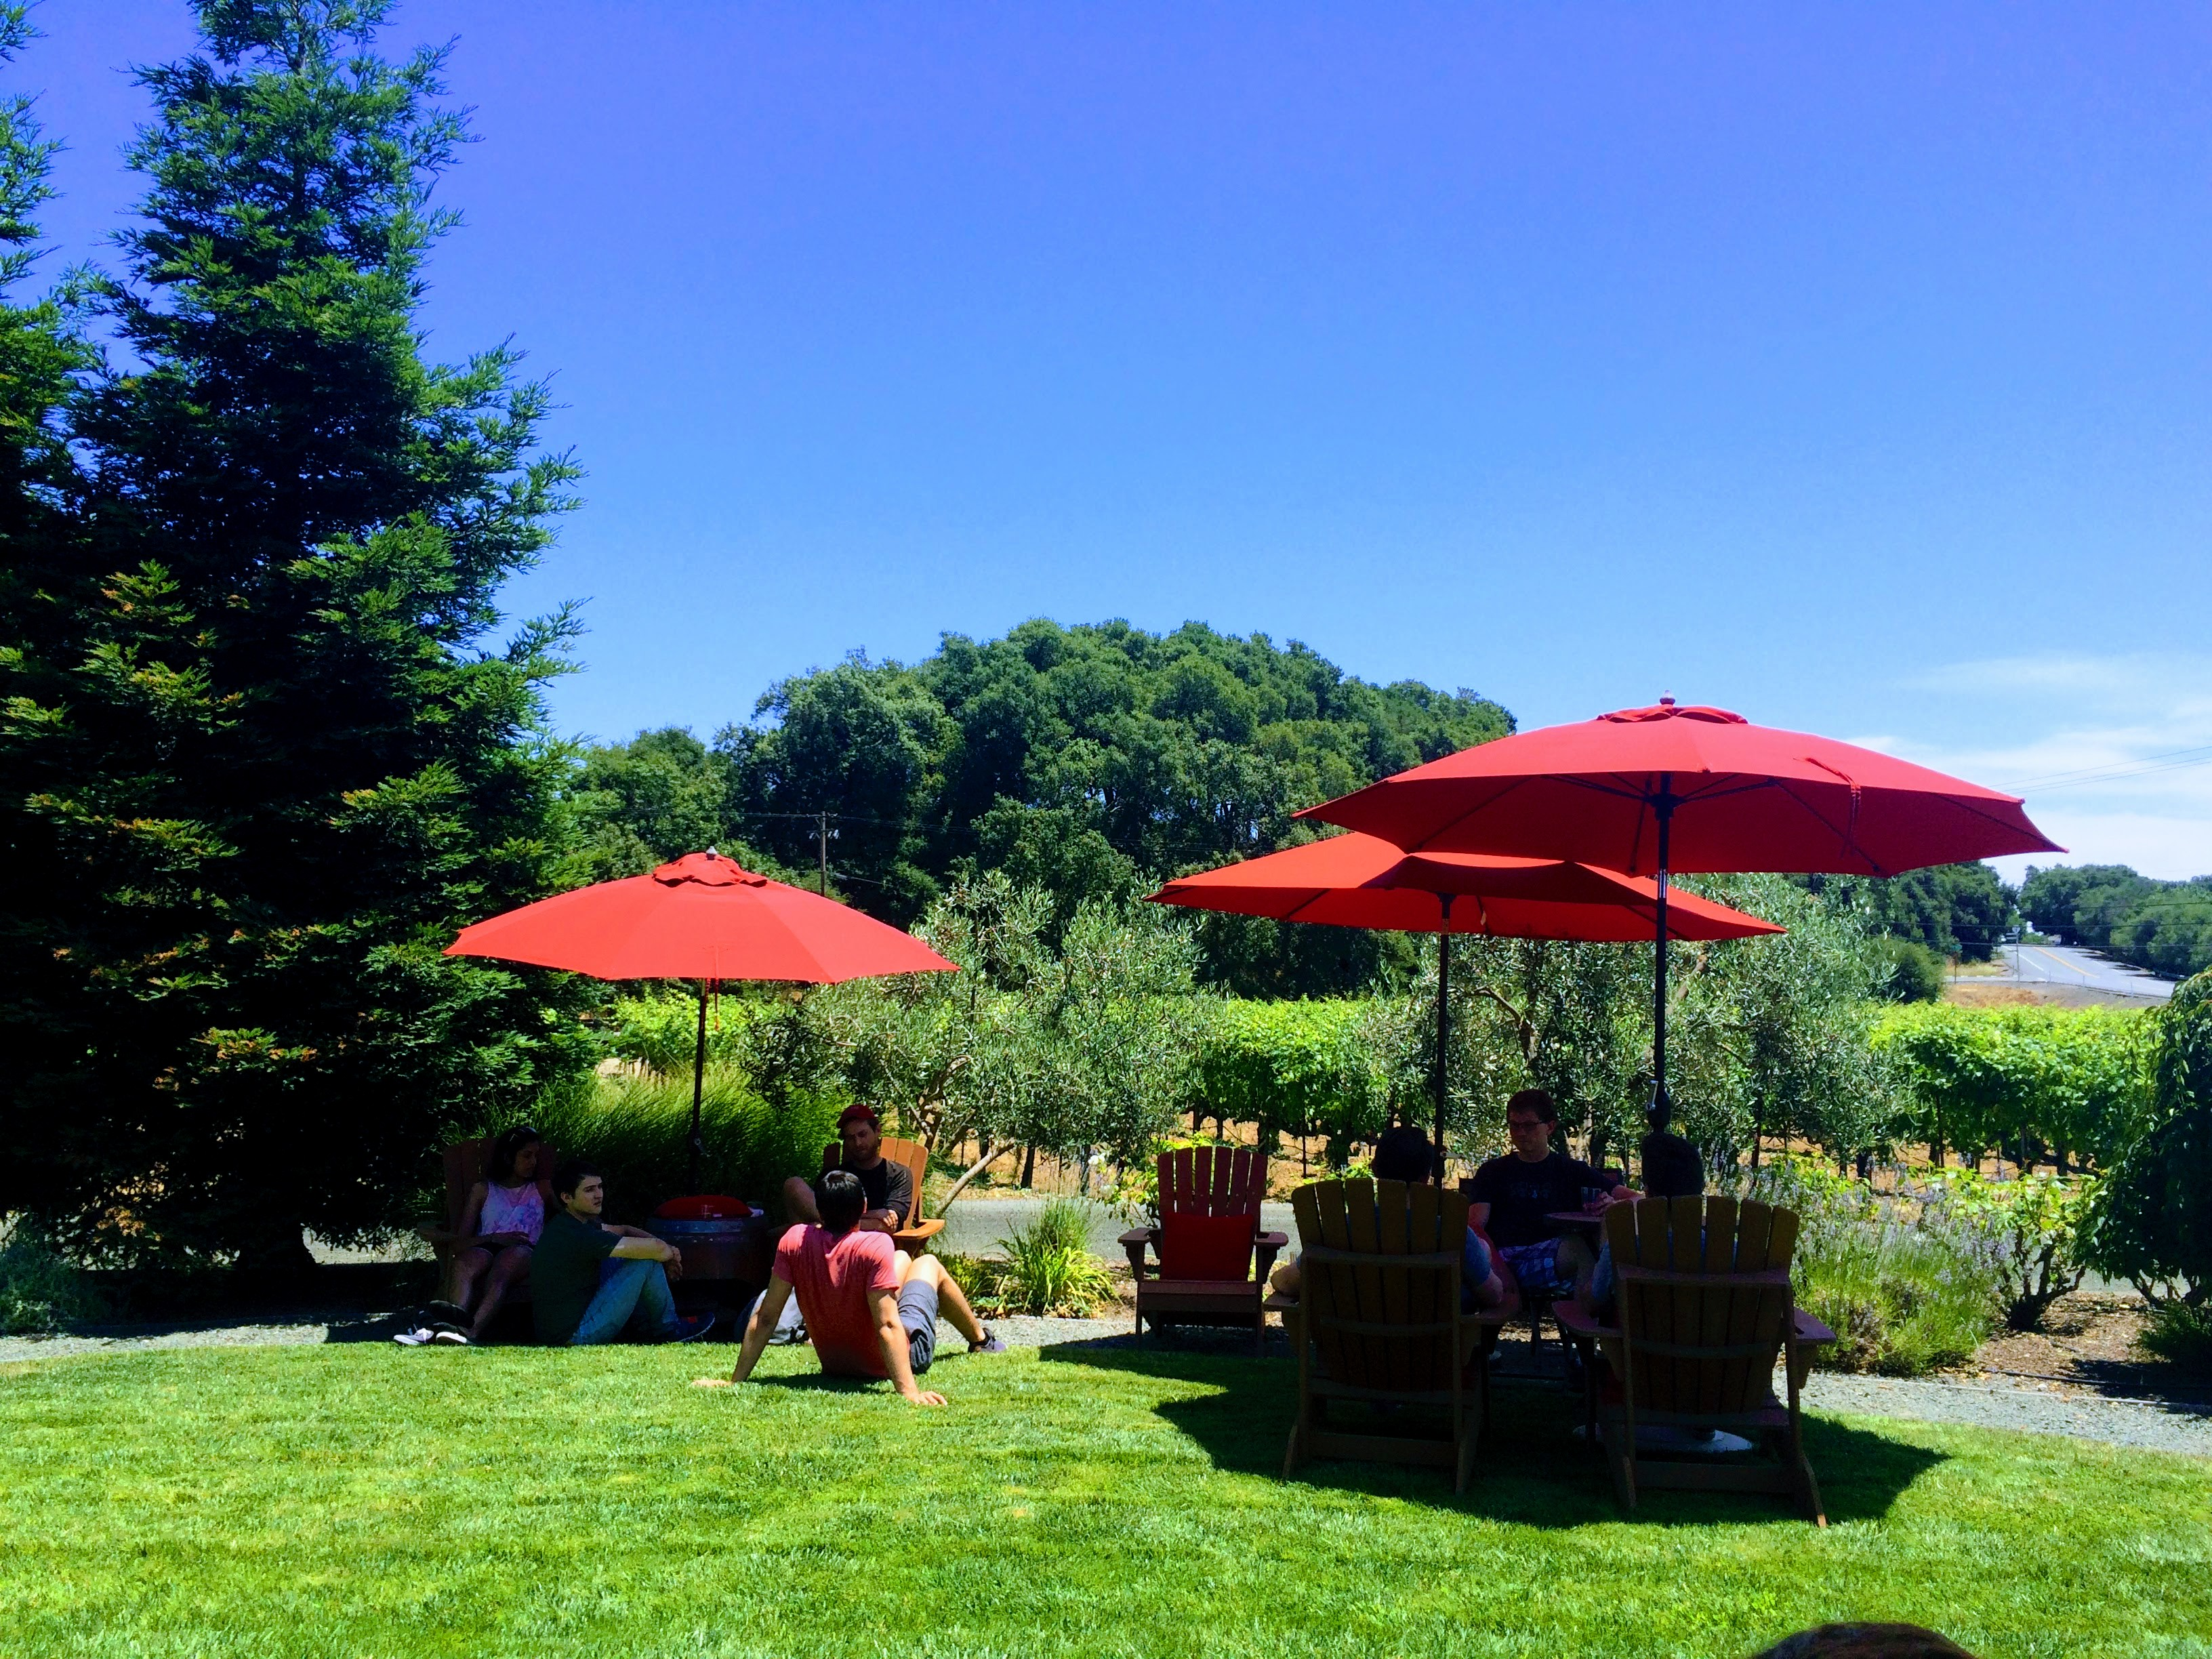 Sonoma Maurtison Winery